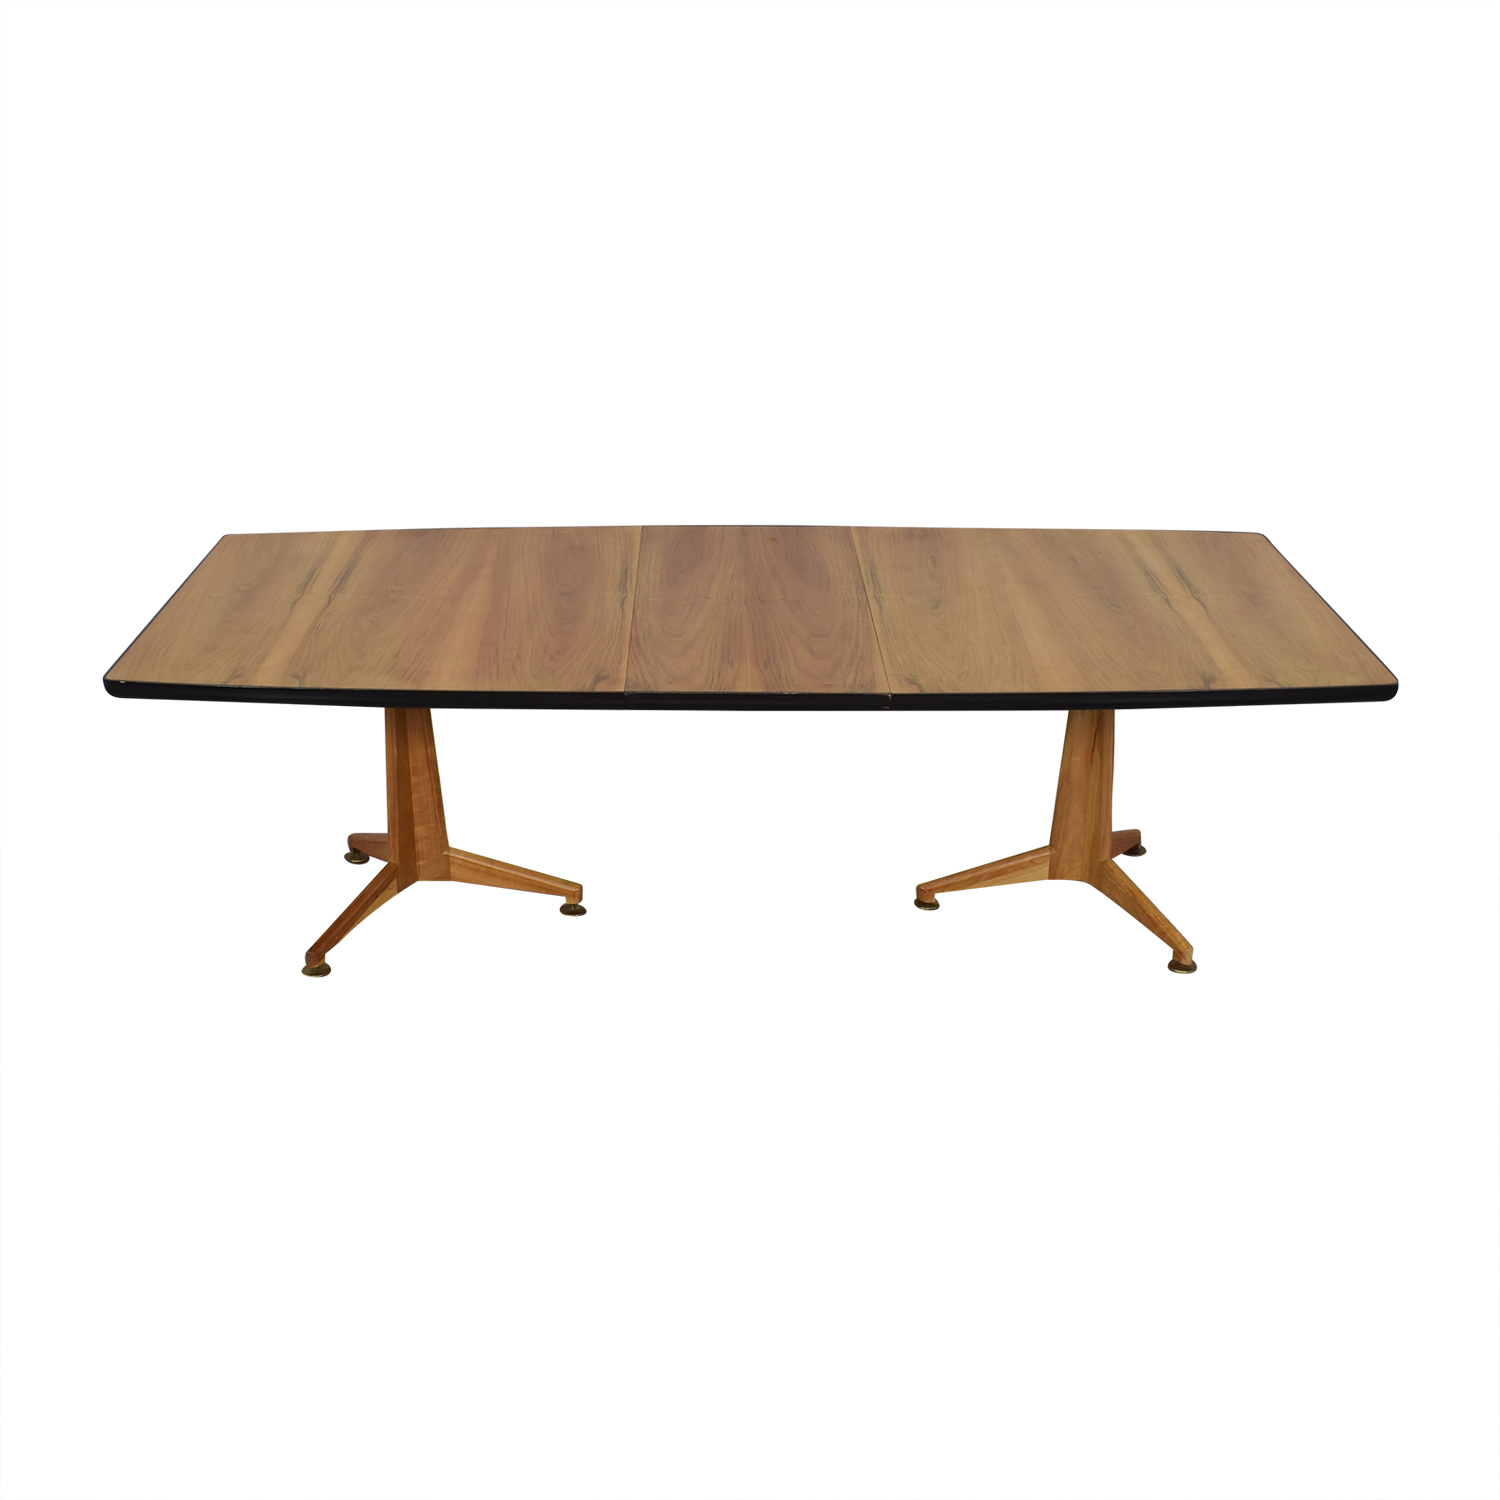 Johnson Furniture Johnson Furniture Mid Century Modern Extendable Dining Table for sale